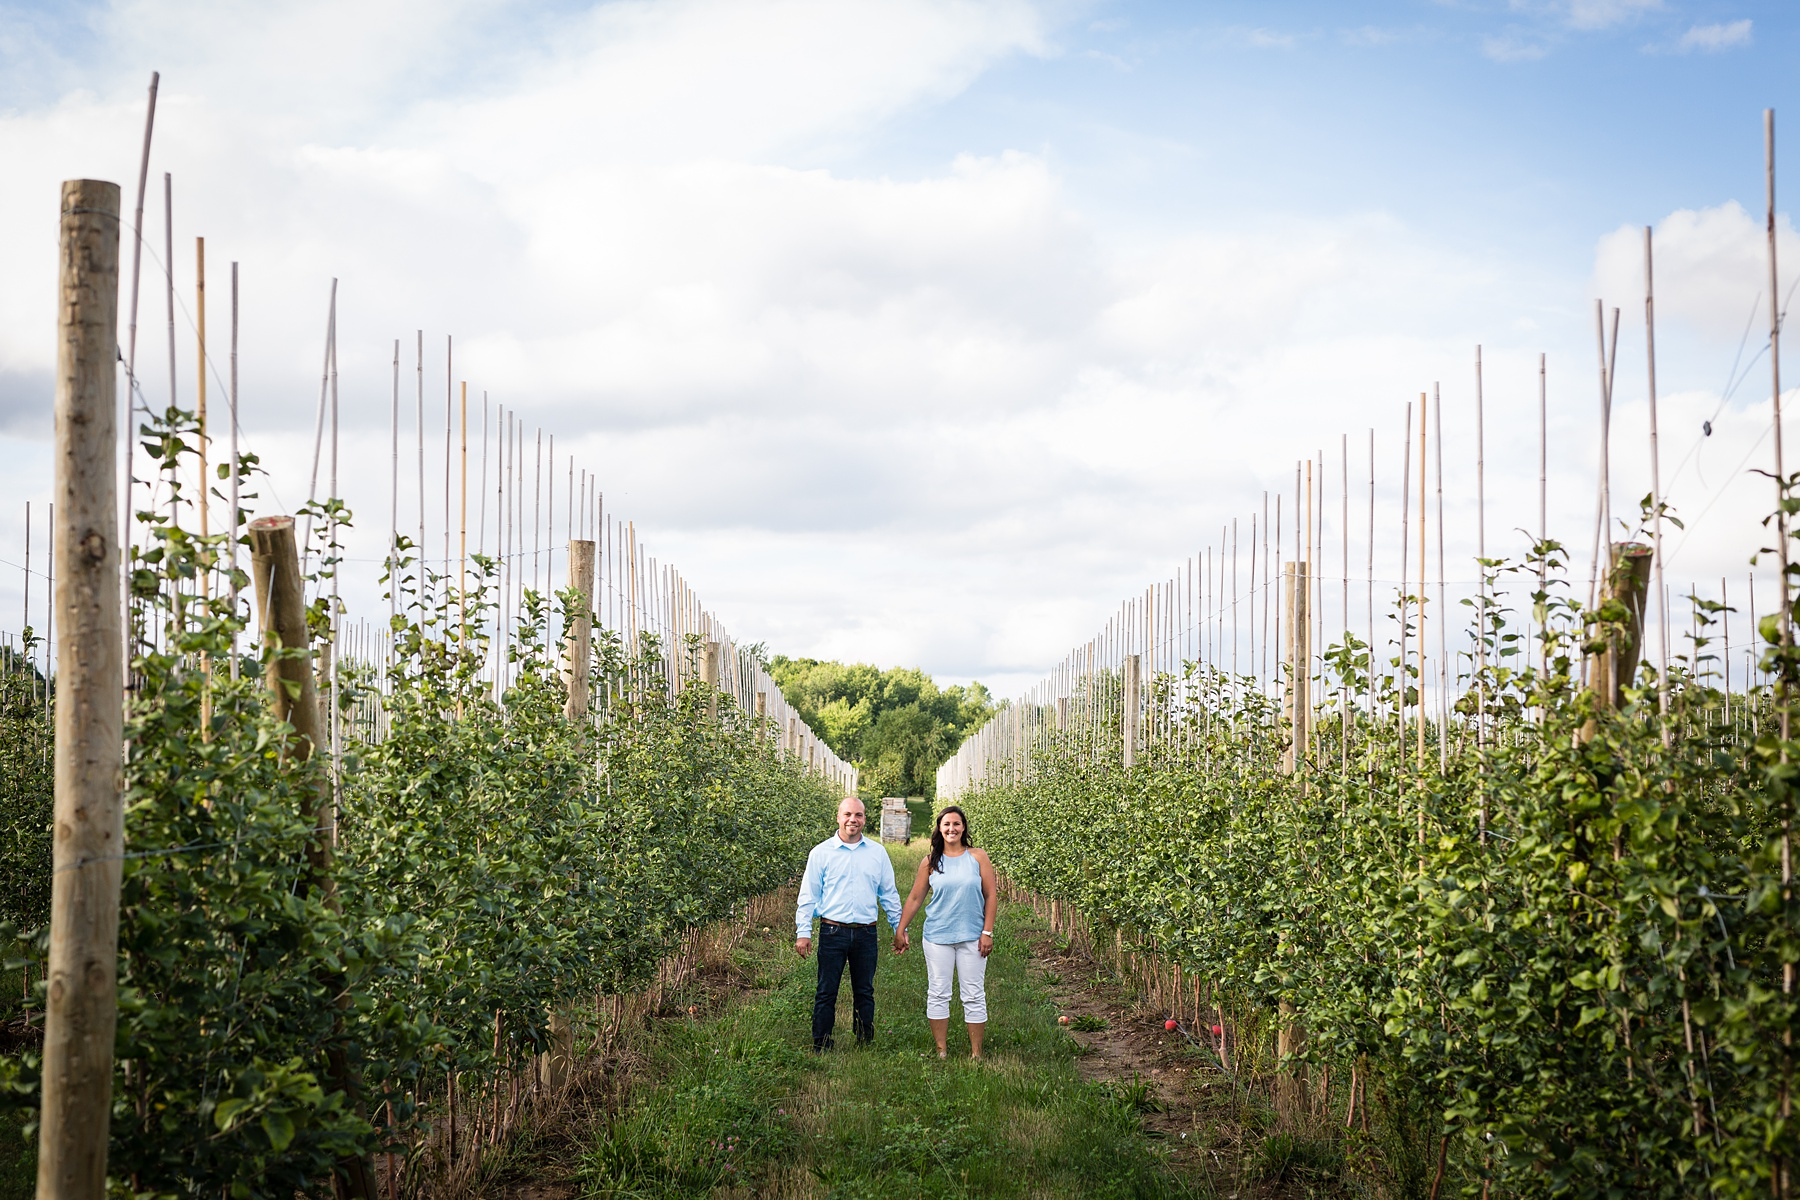 Brandon_Shafer_Photography_Danielle_Matt_Apple_Orchard_Engagement_Photos_0008.jpg